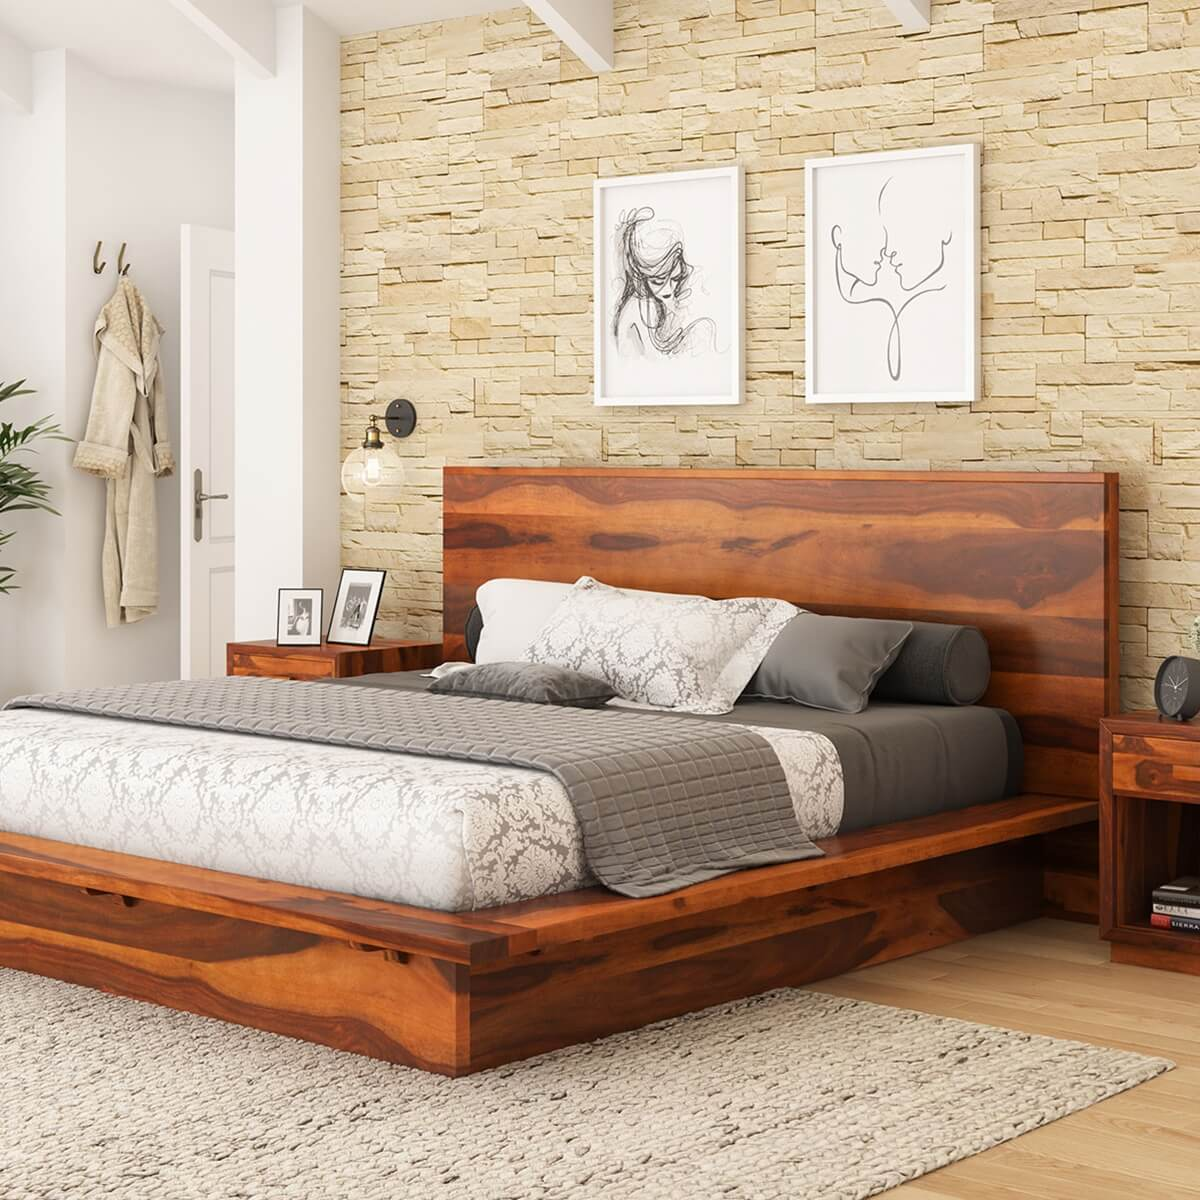 delaware solid wood platform bed frame. Black Bedroom Furniture Sets. Home Design Ideas